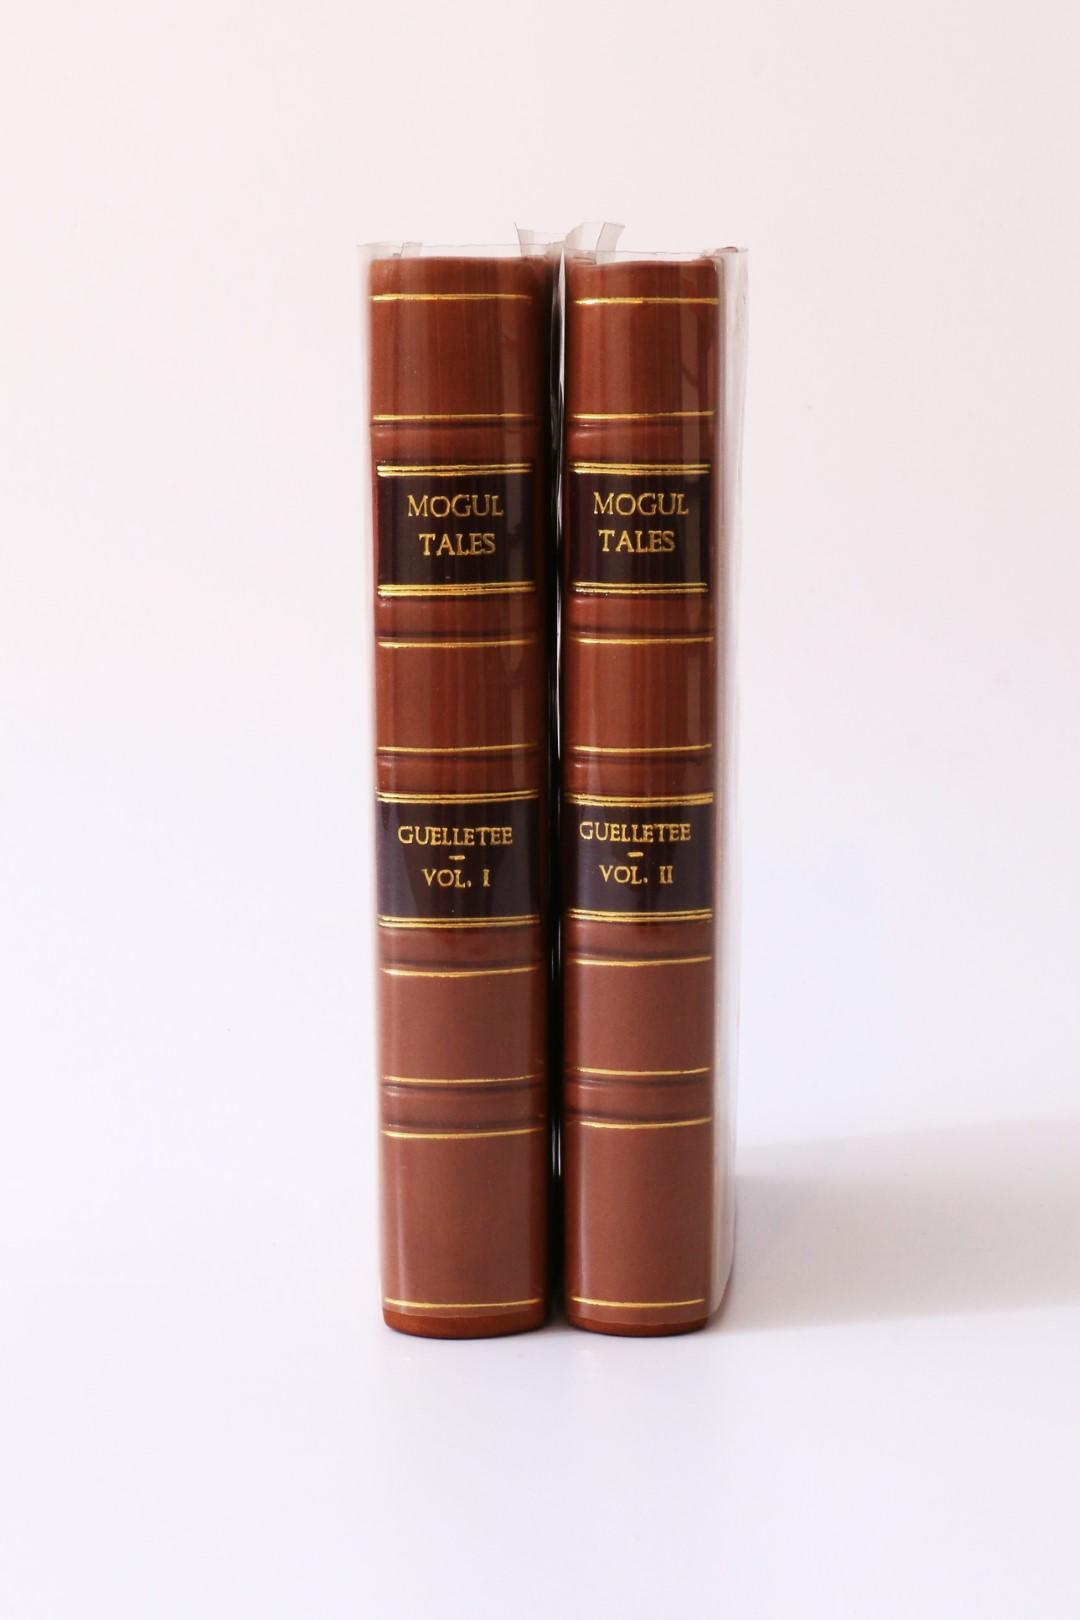 [Thomas Simon] Gueullette - Mogul Tales - J. Applebee, 1736, First Edition.